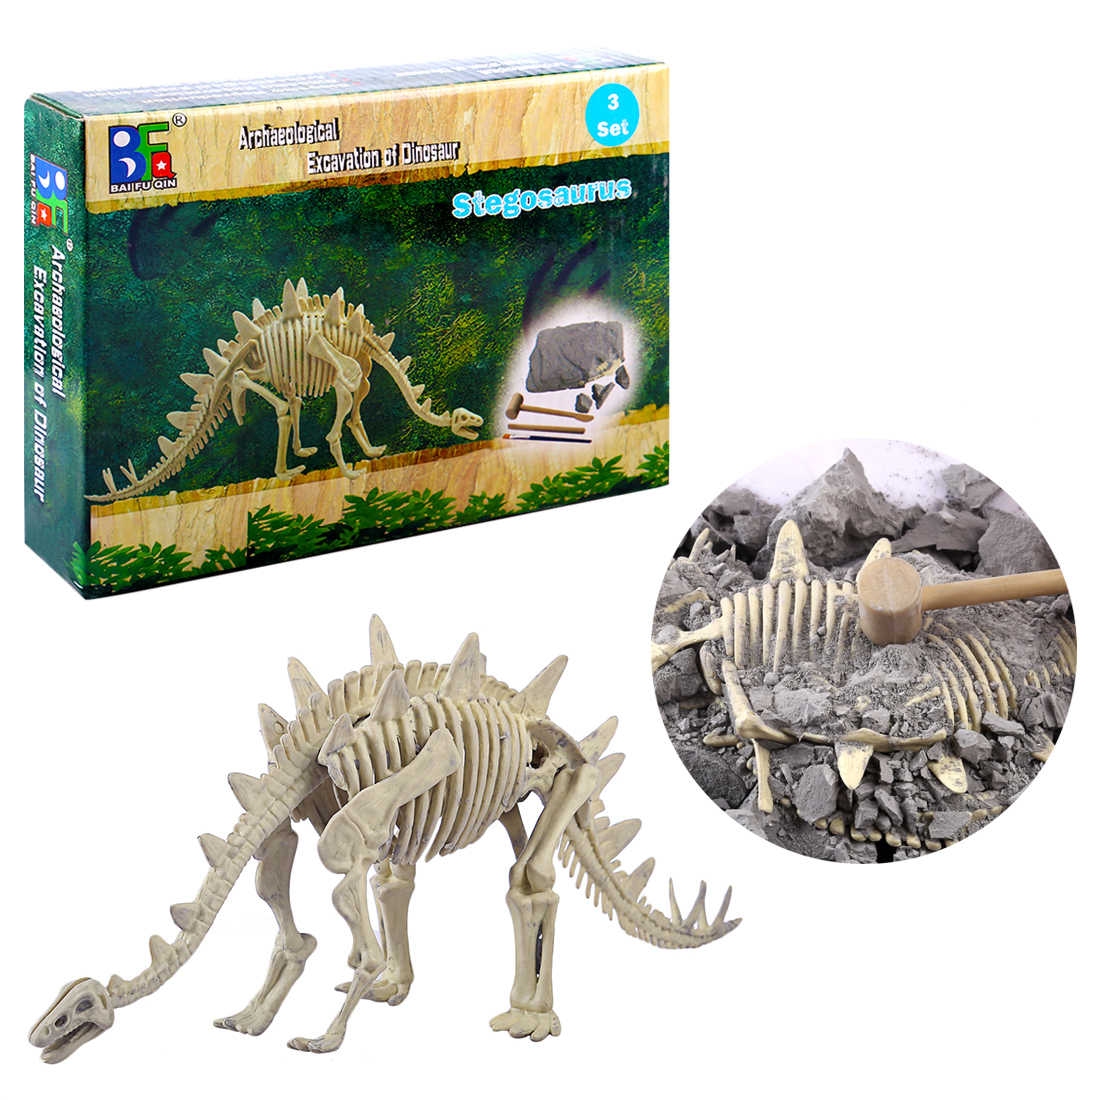 Children Creative Educational Fossil Dinosaur Archaeology Excavation Science History Educational Toys For Children